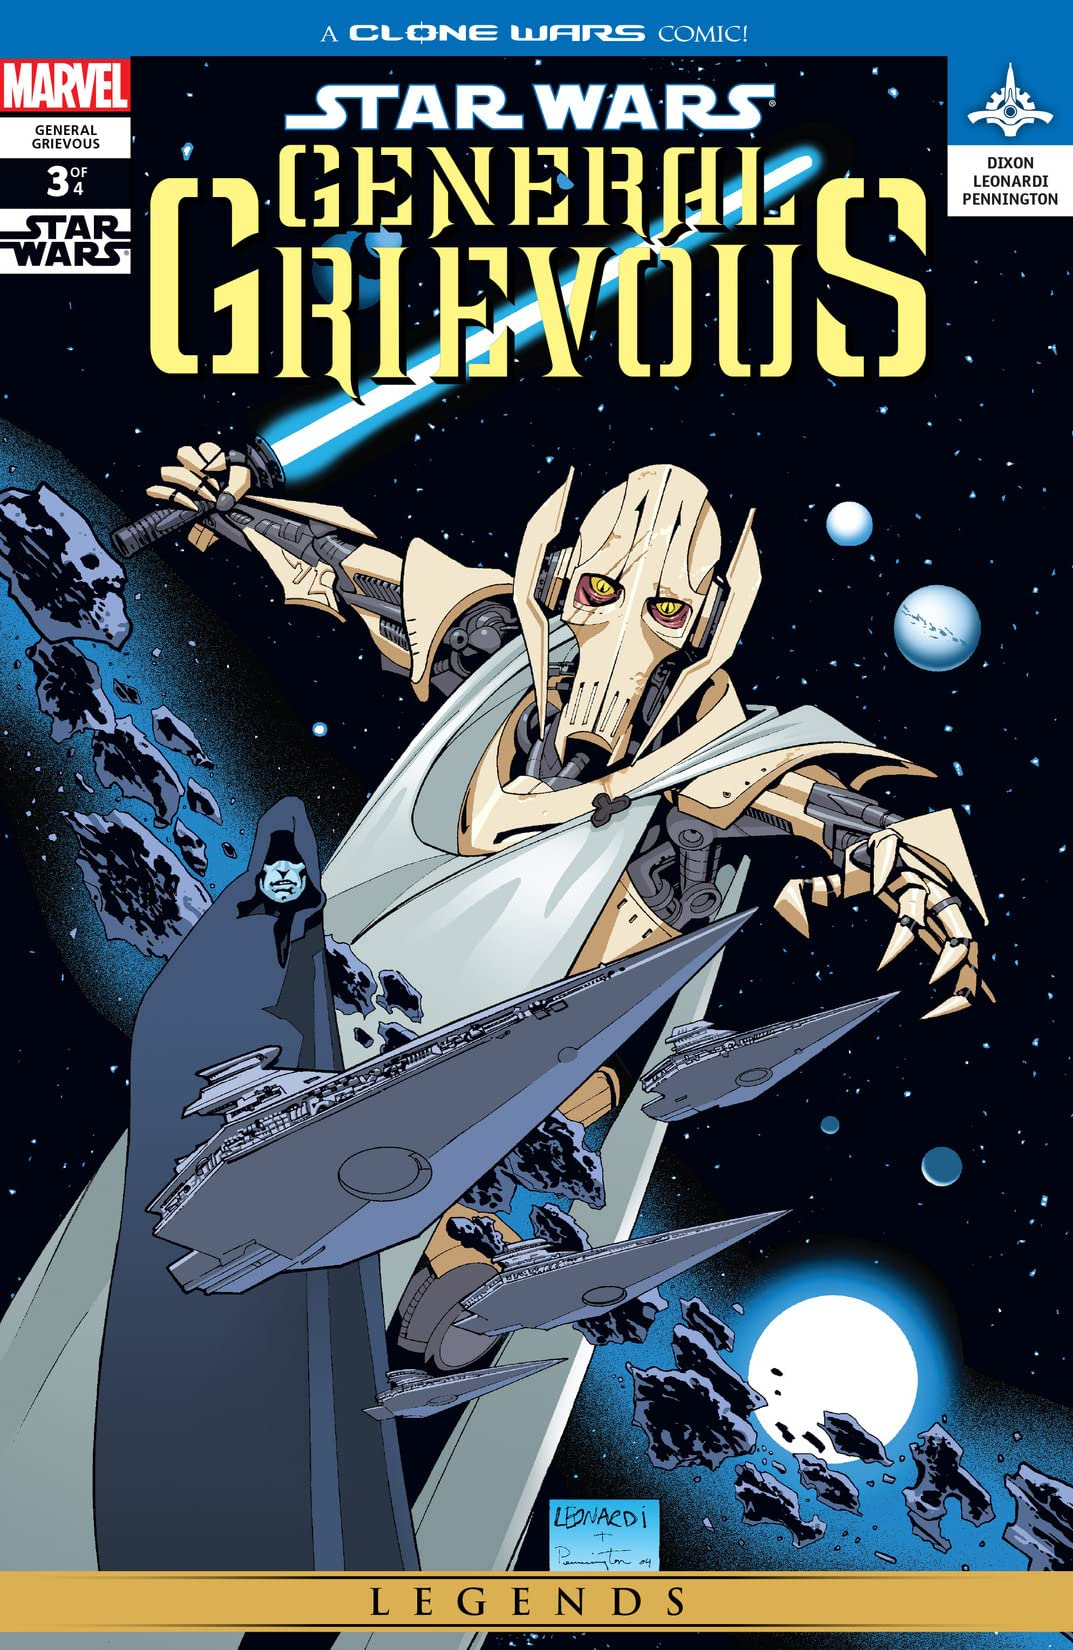 Star Wars: General Grievous (2005) #3 (of 4)